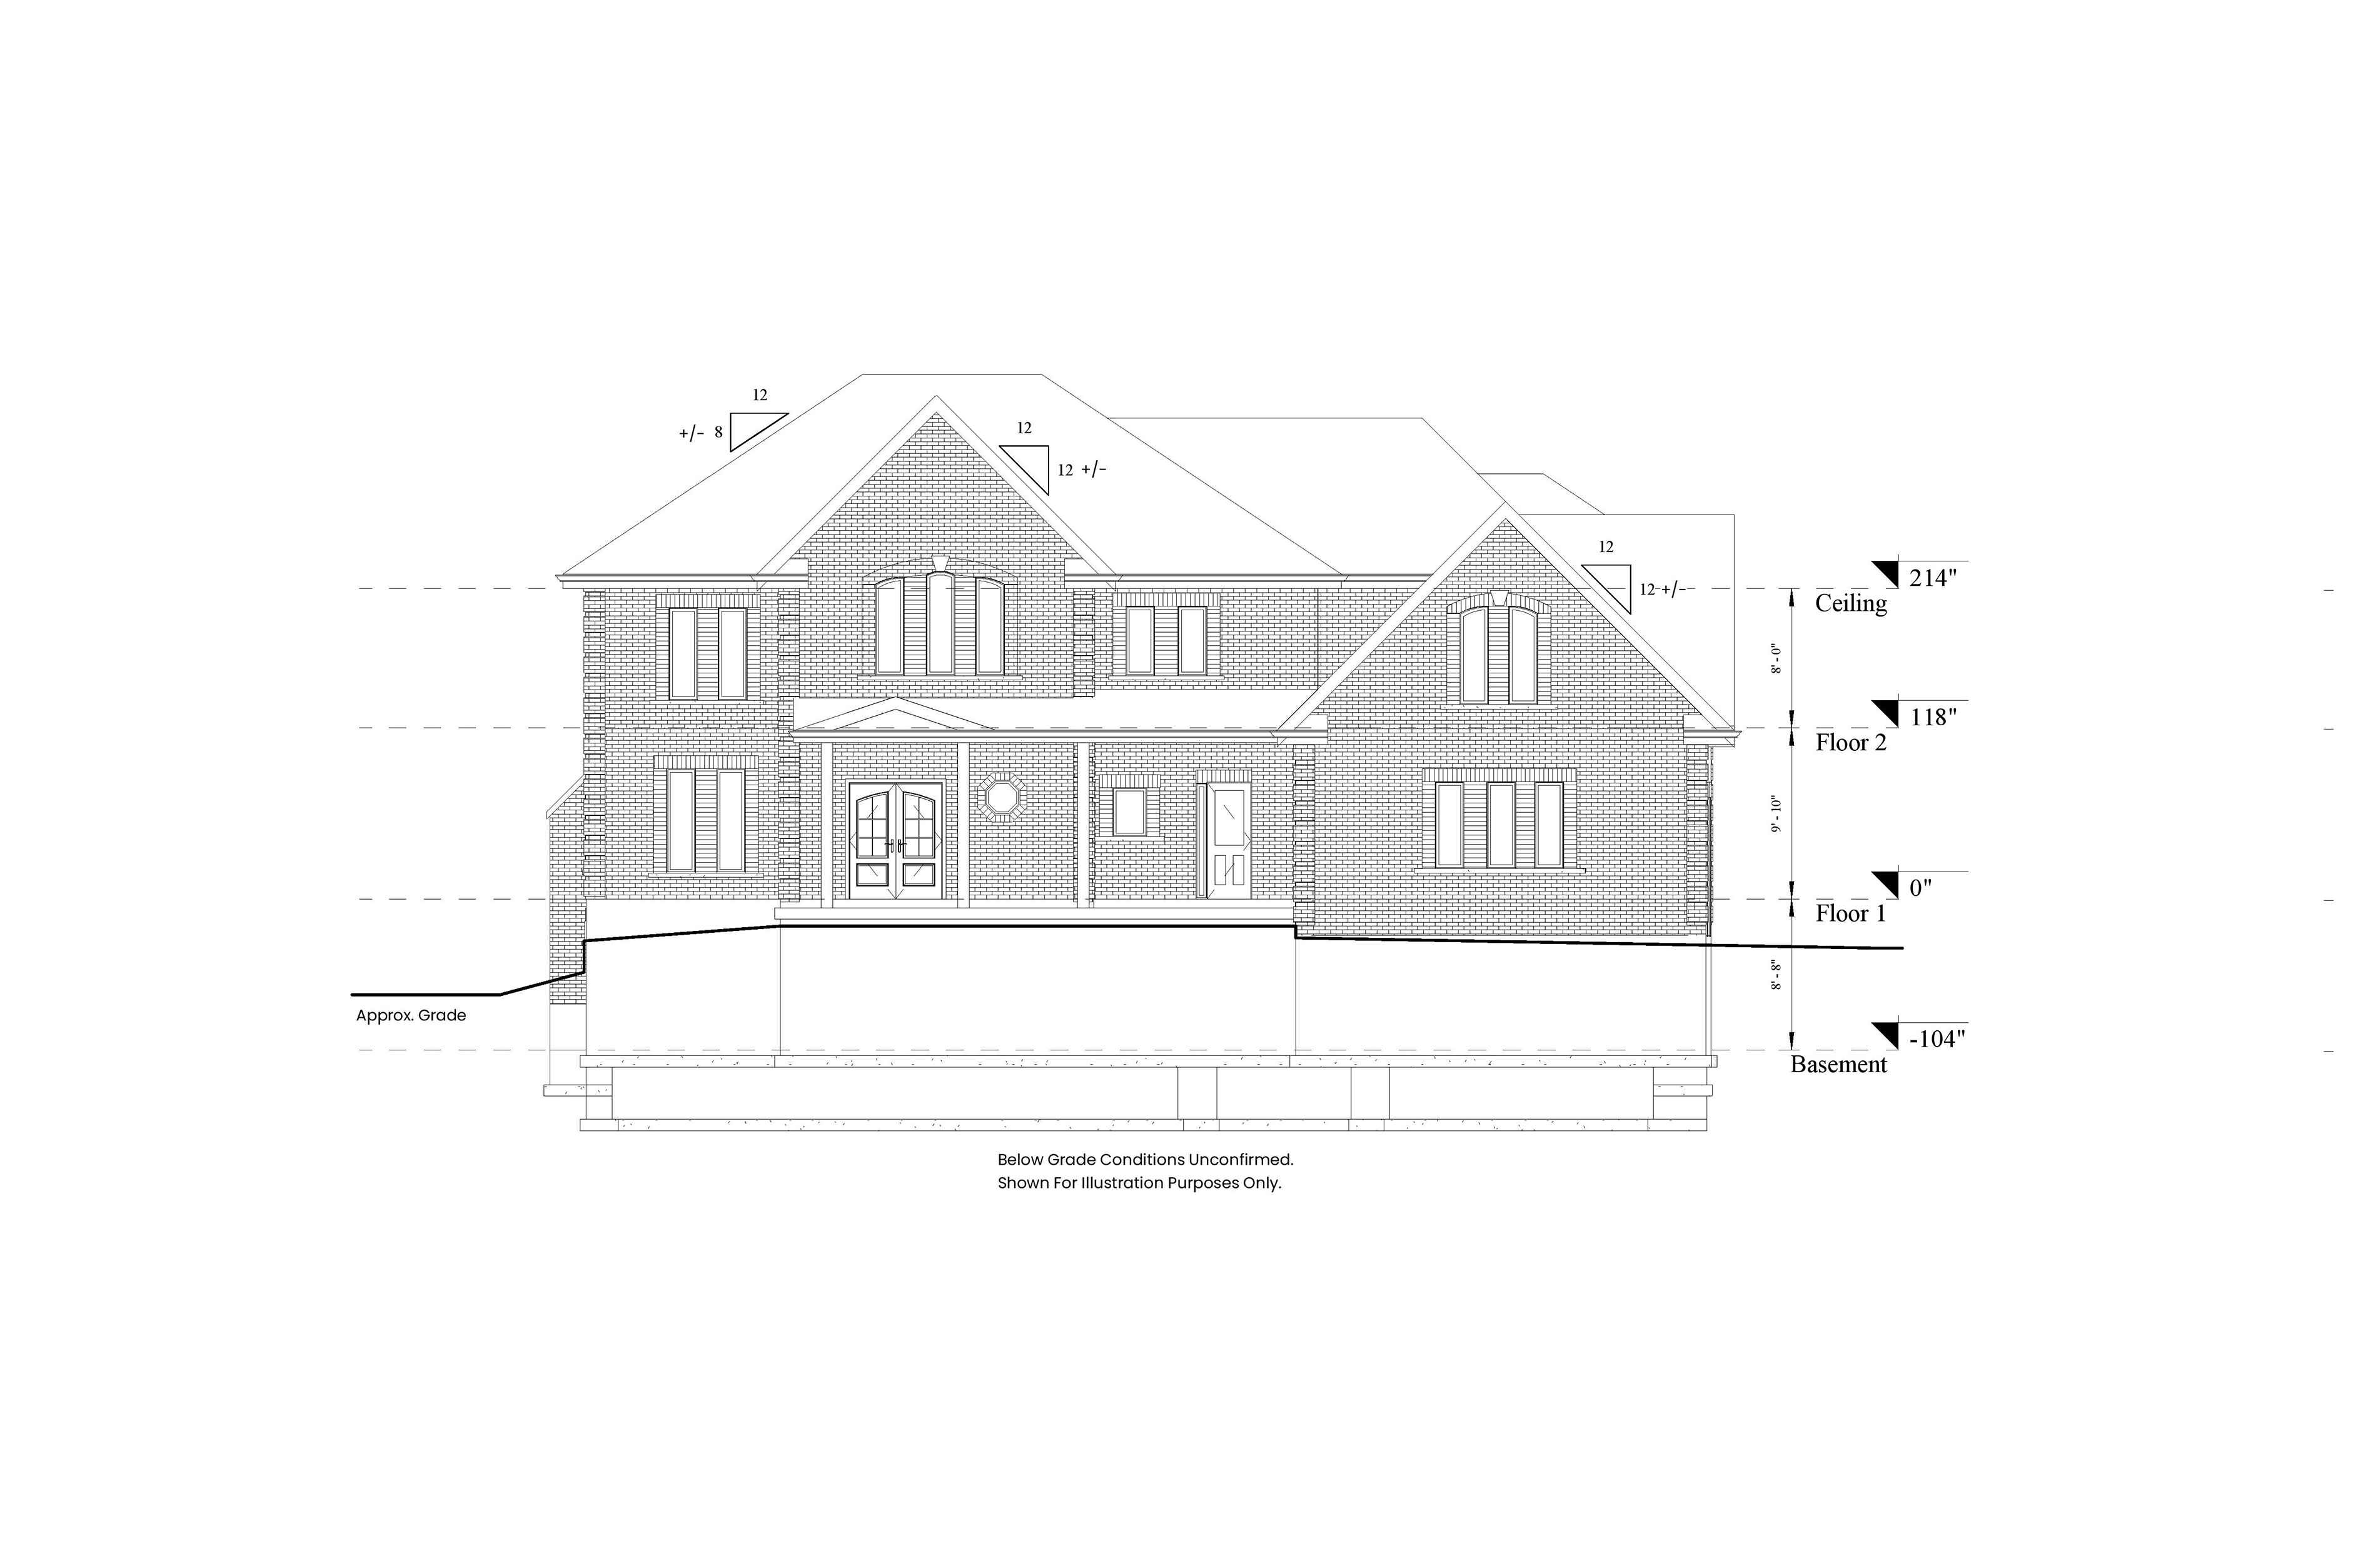 A 2D Scan to CAD elevation model of the front view of a two level residential house.